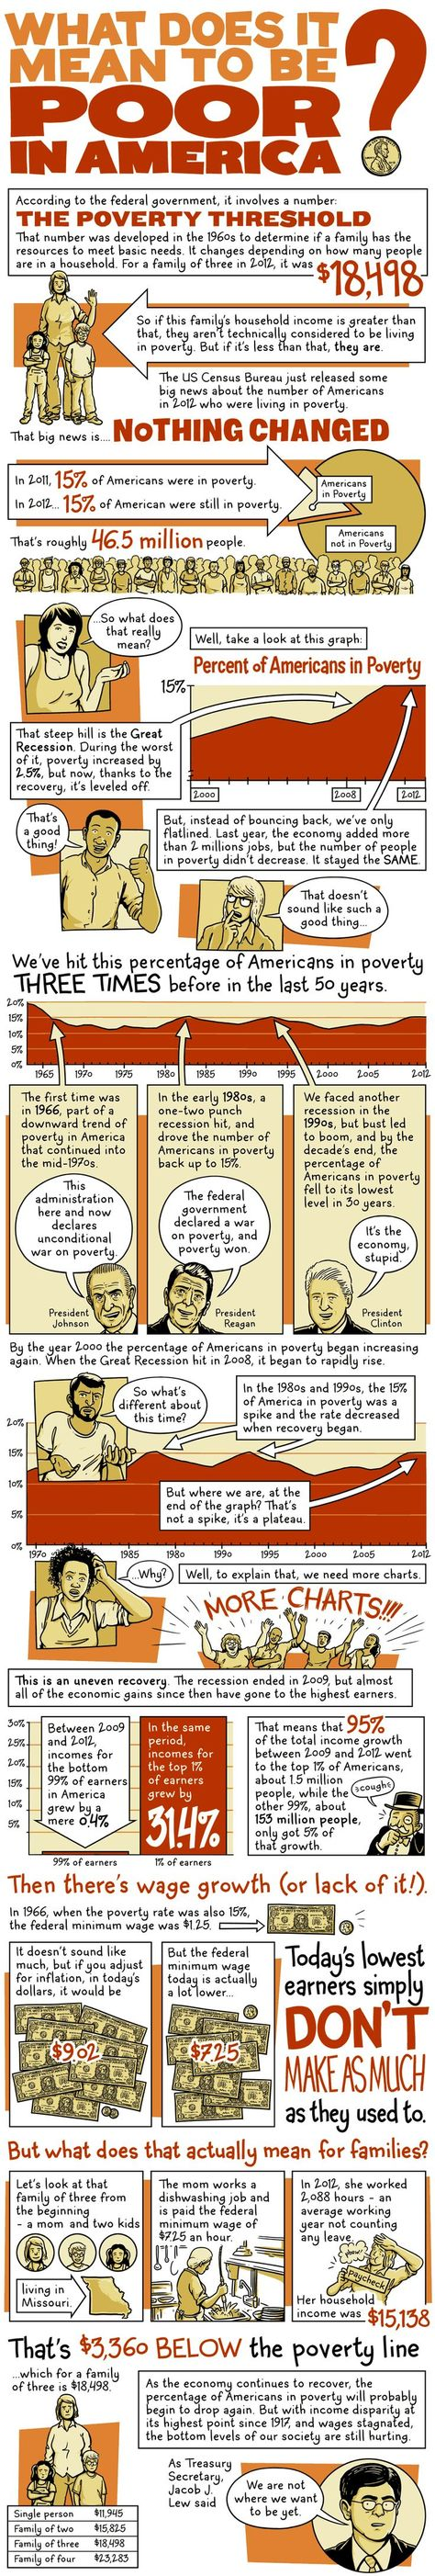 378 best sociological images on pinterest social justice anti 378 best sociological images on pinterest social justice anti capitalism and politics biocorpaavc